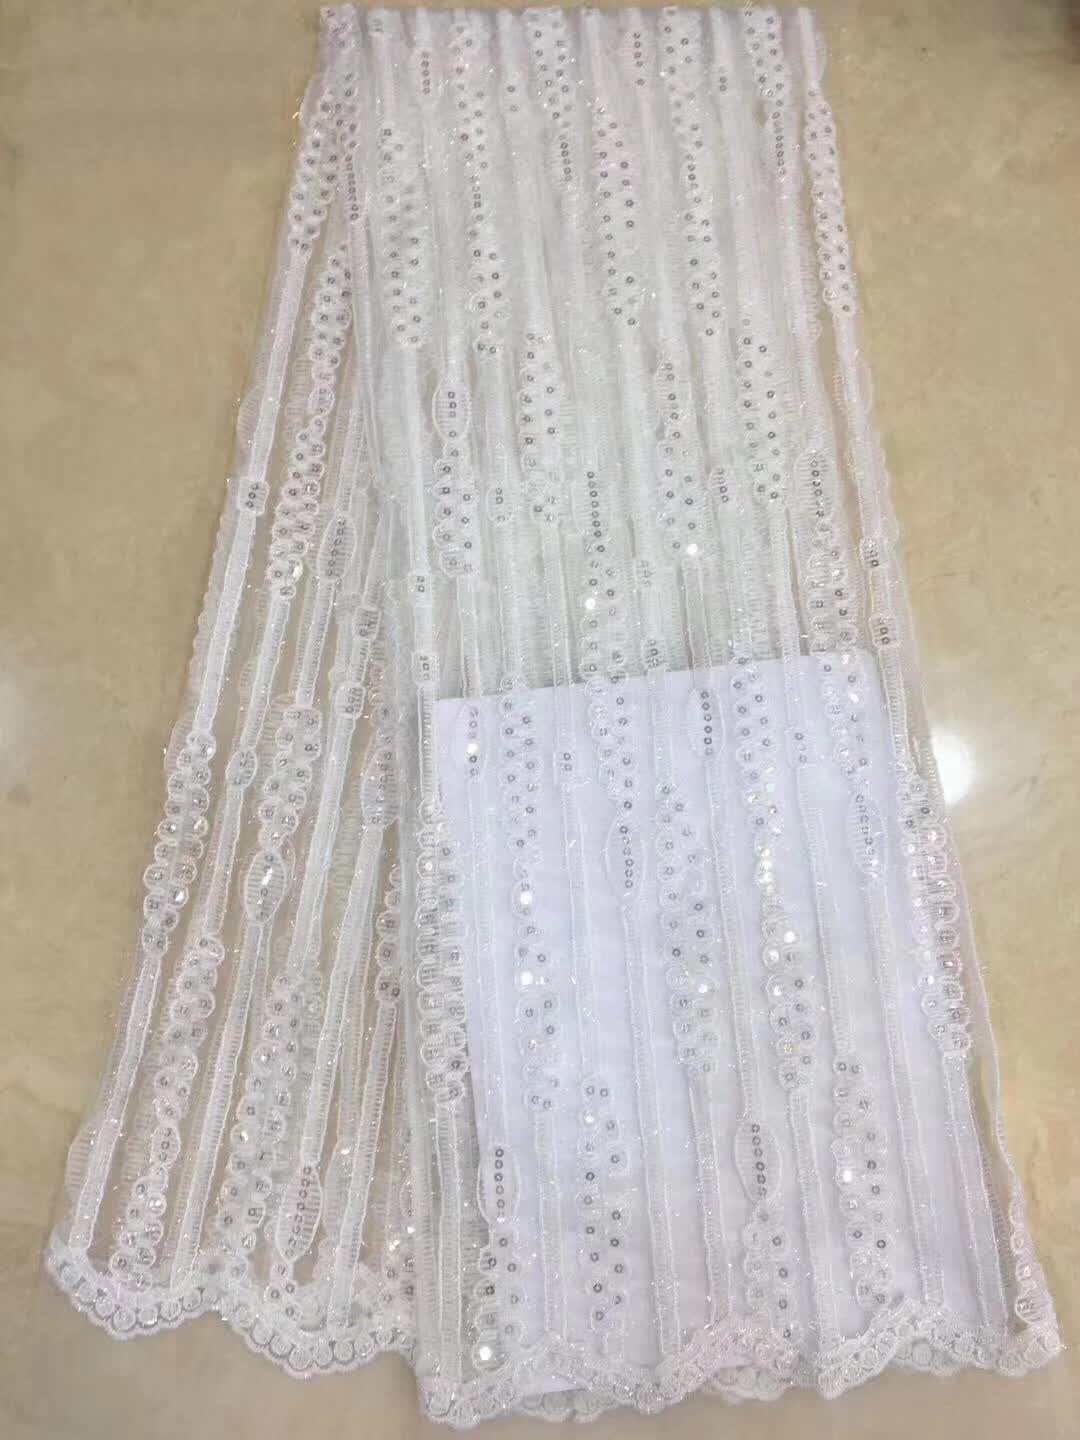 Newest Double color embroidery chemical guipure African lace fabric and Nigeria white color french net lace fabric for weddingNewest Double color embroidery chemical guipure African lace fabric and Nigeria white color french net lace fabric for wedding